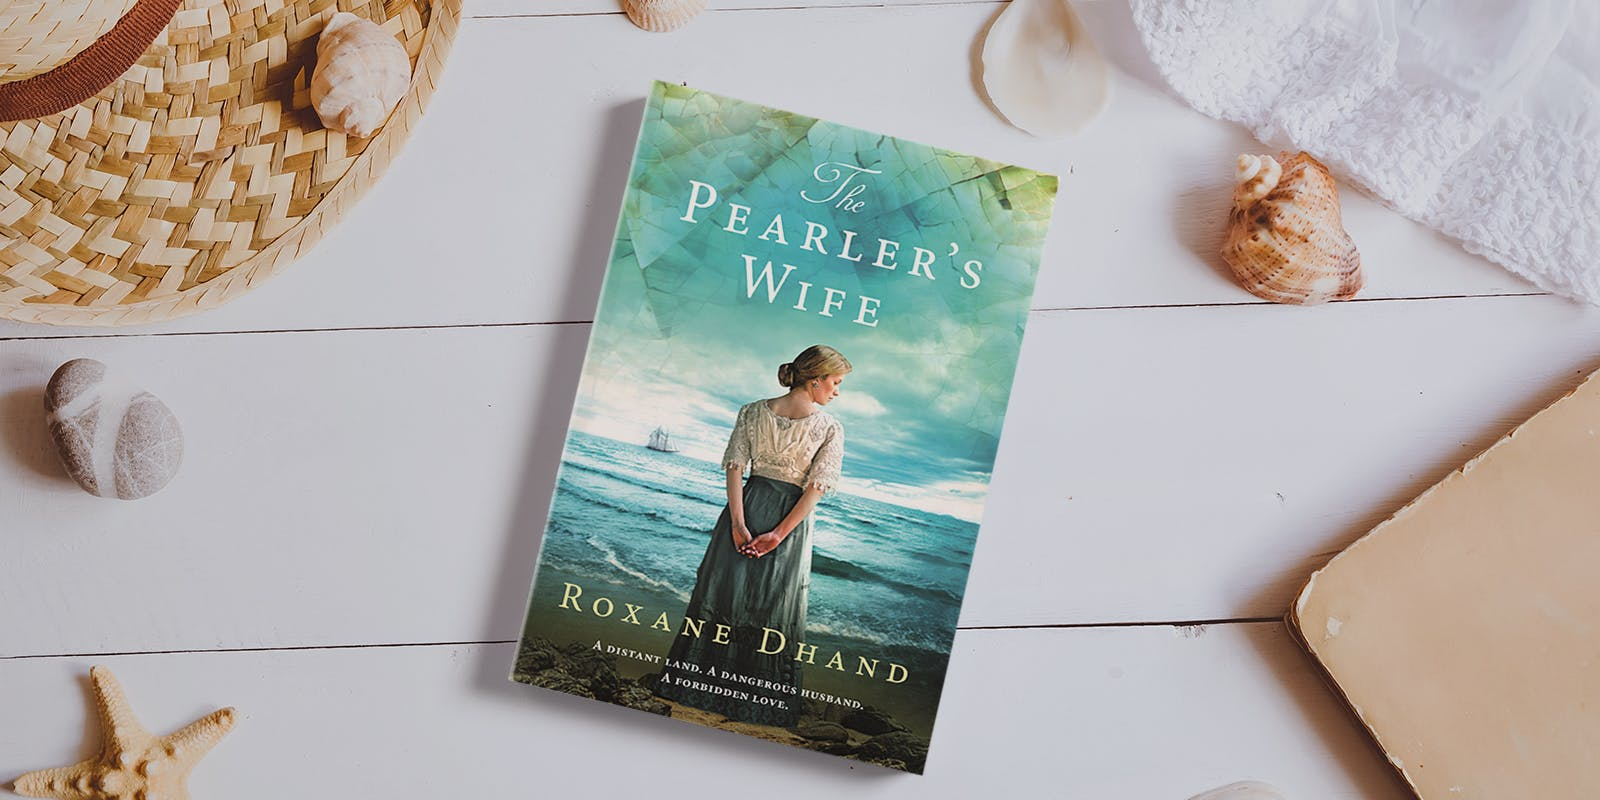 Researching The Pearler's Wife